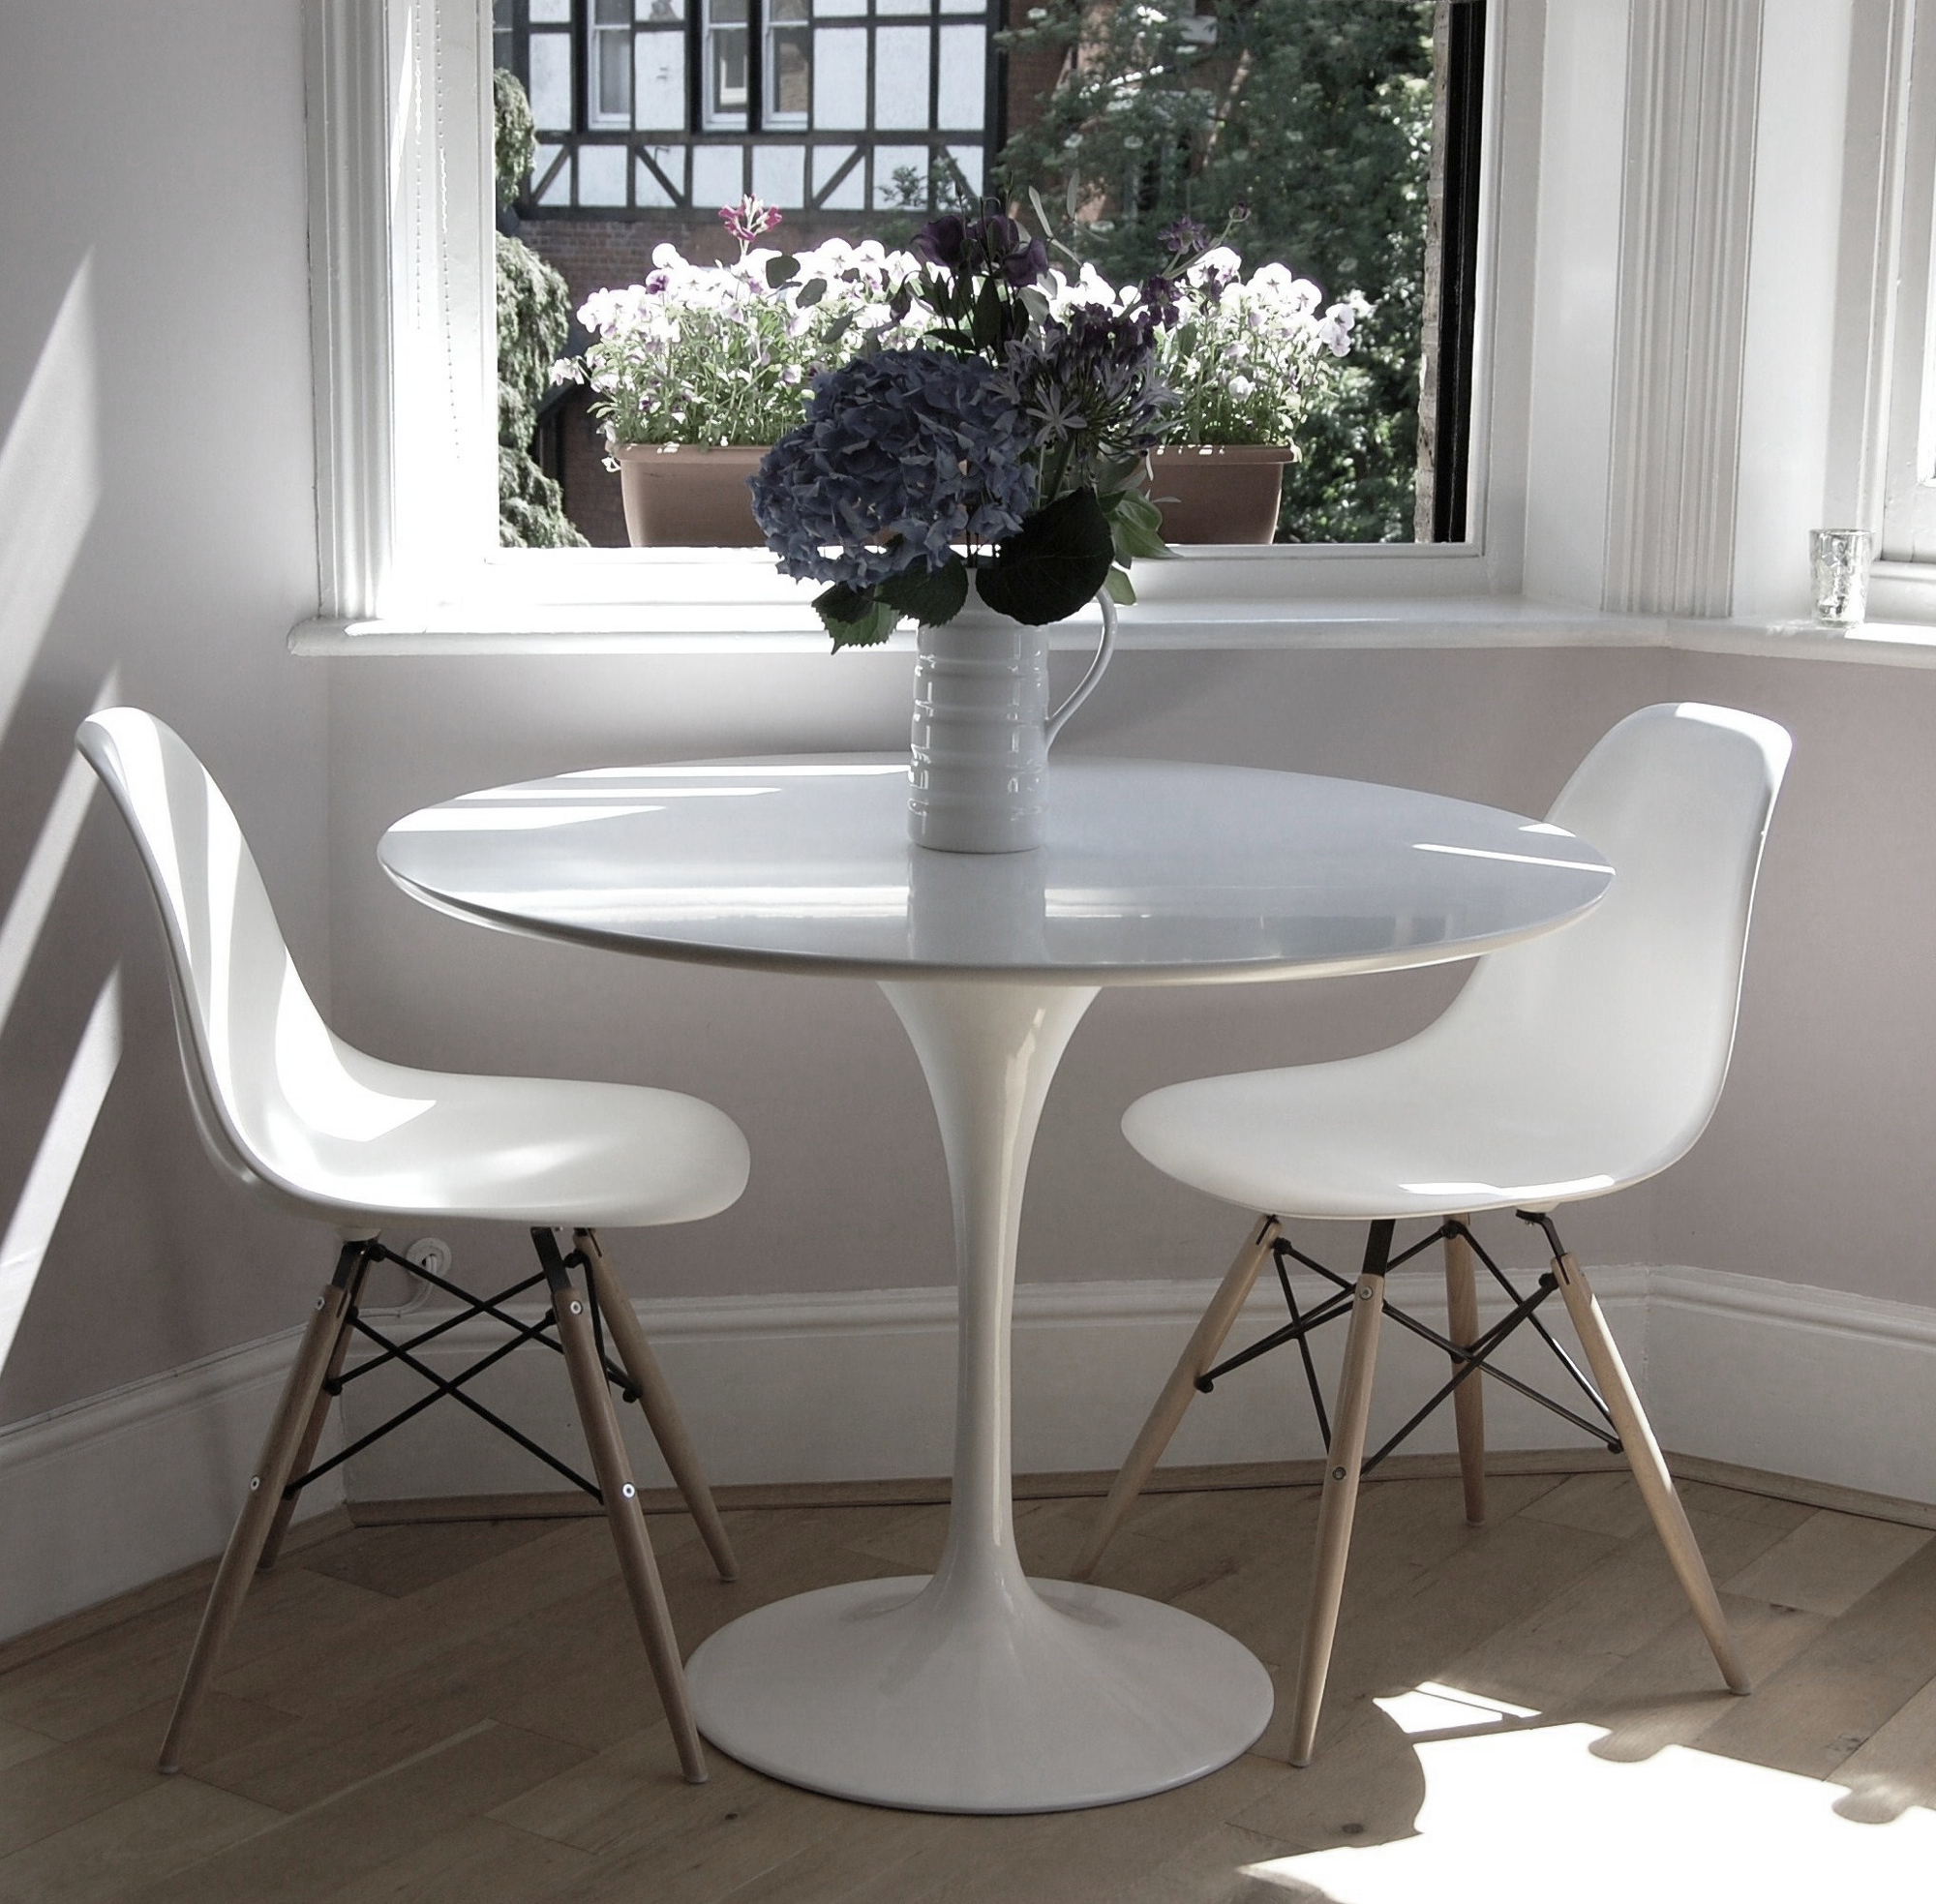 Tulip dining table 90cm the natural furniture company ltd for Tulip dining table